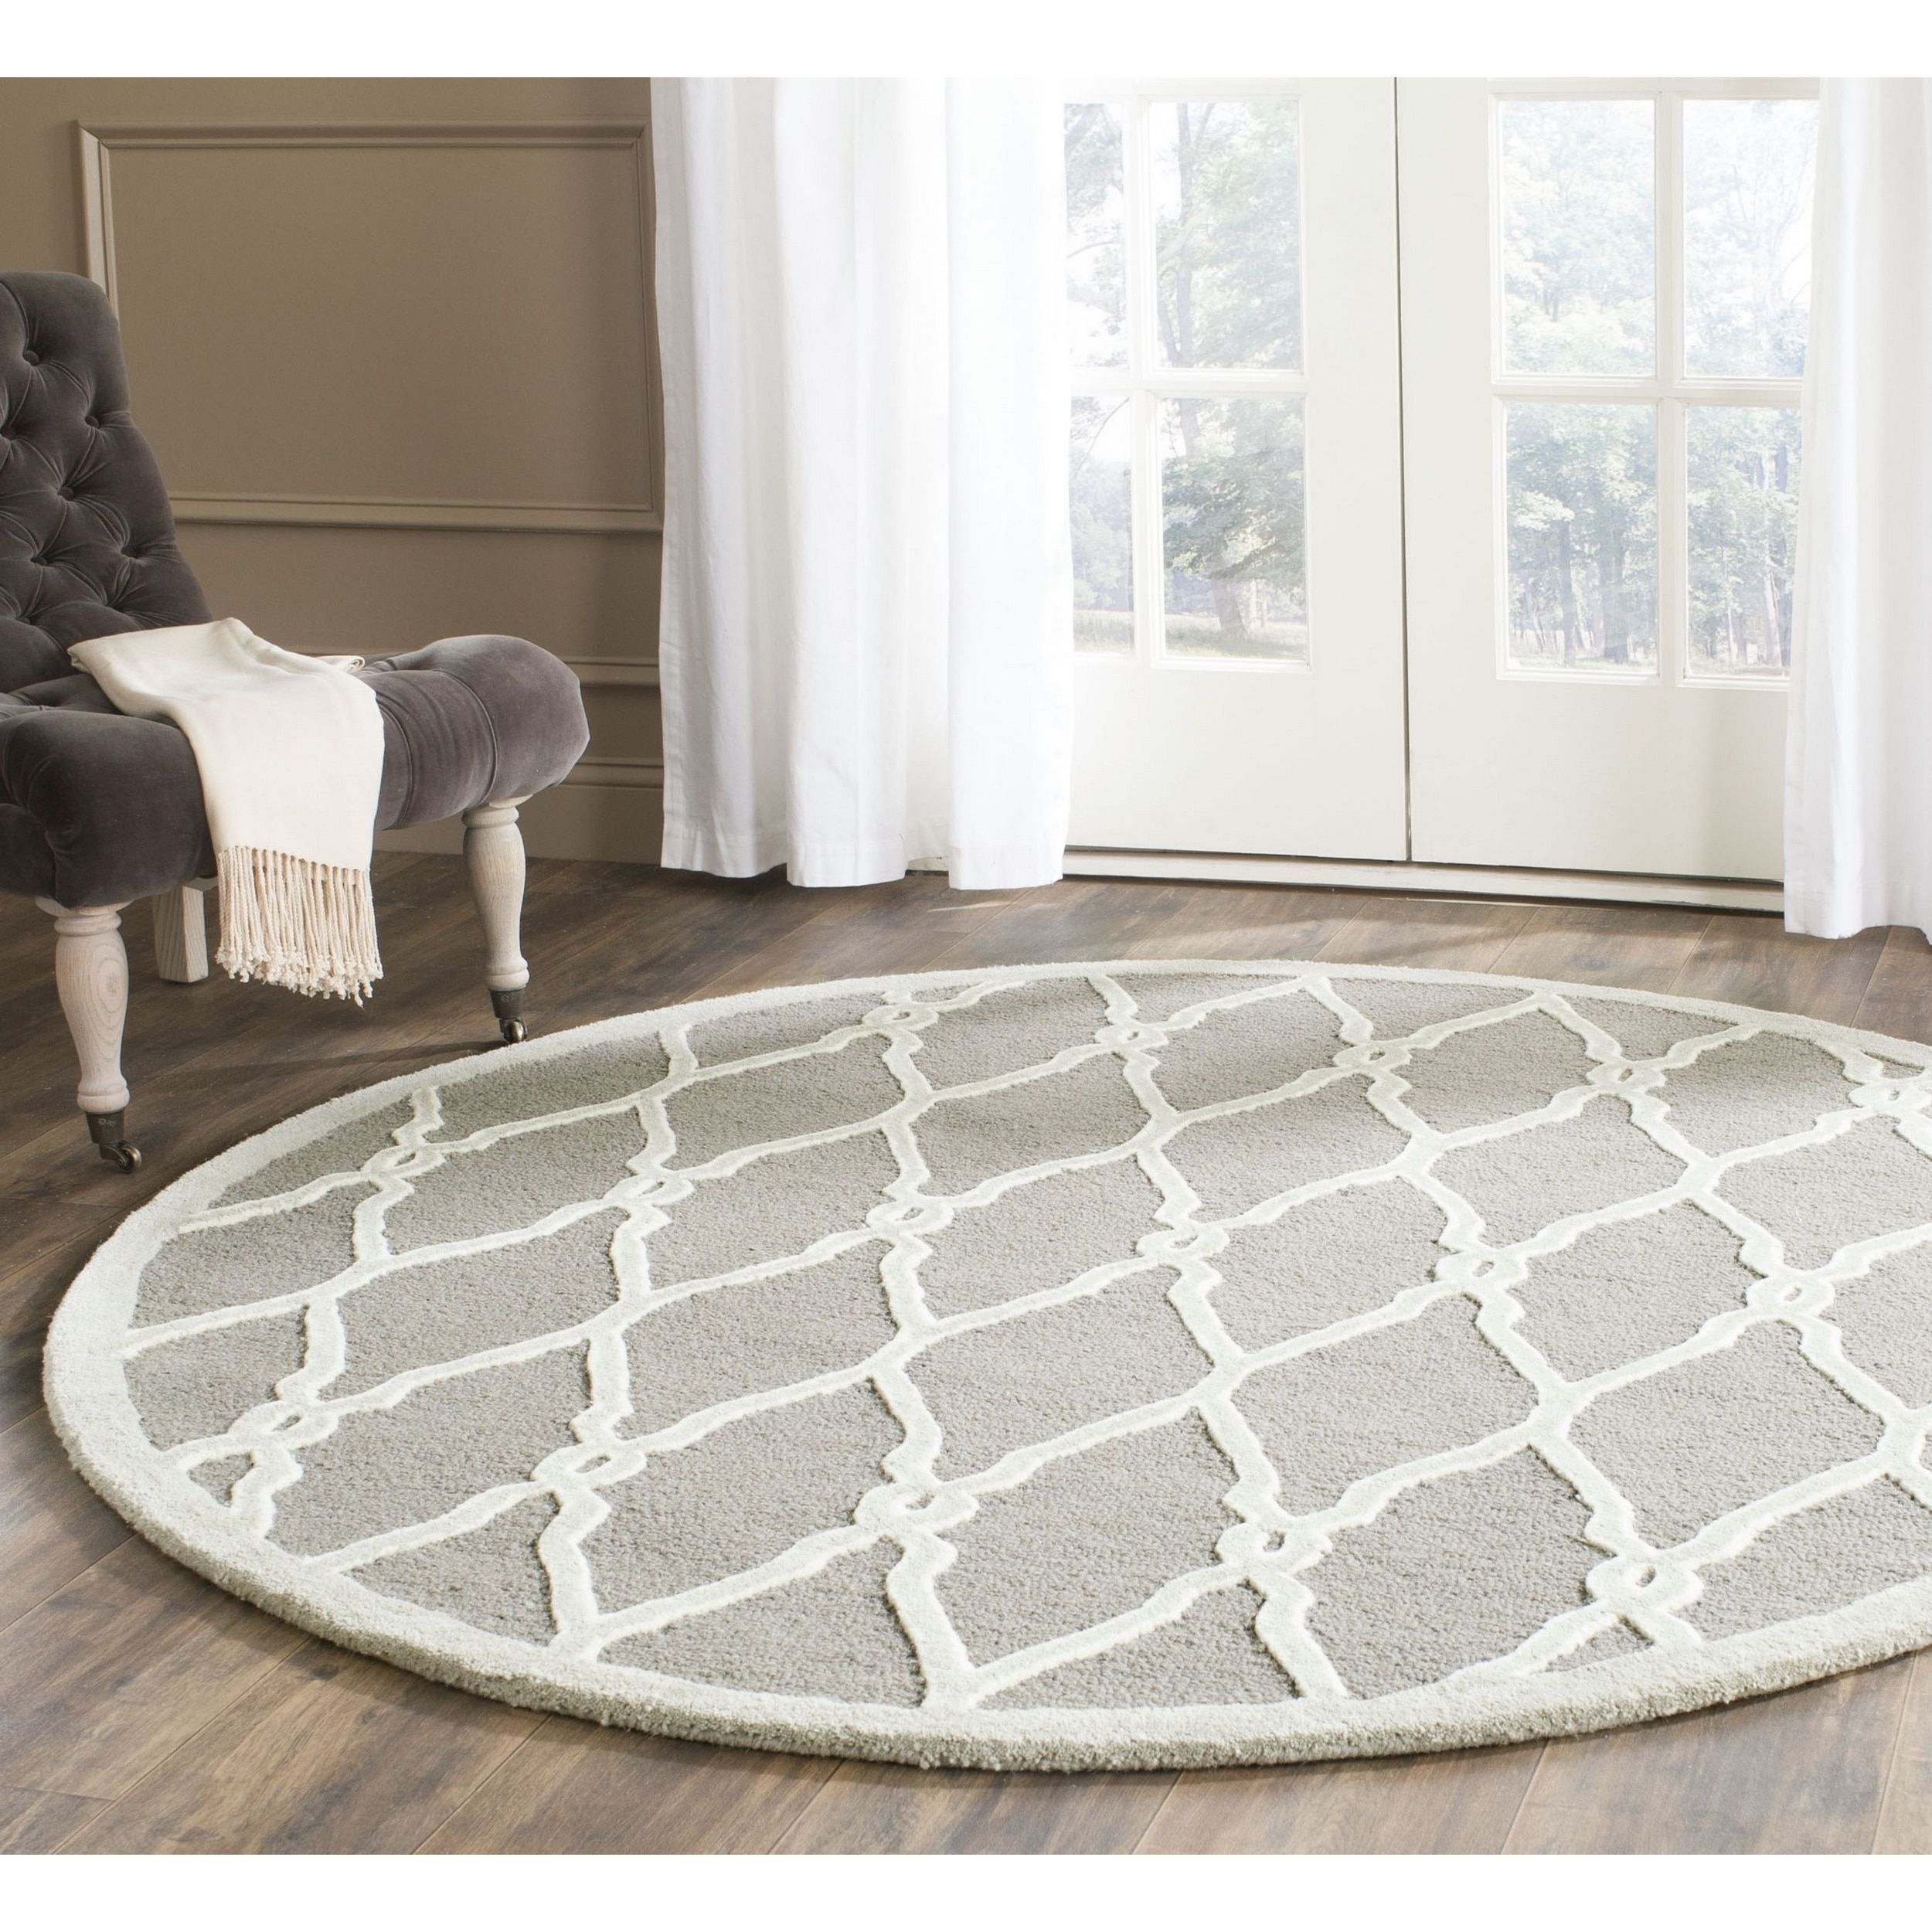 Round Rug 8x8 Area Rug Ideas